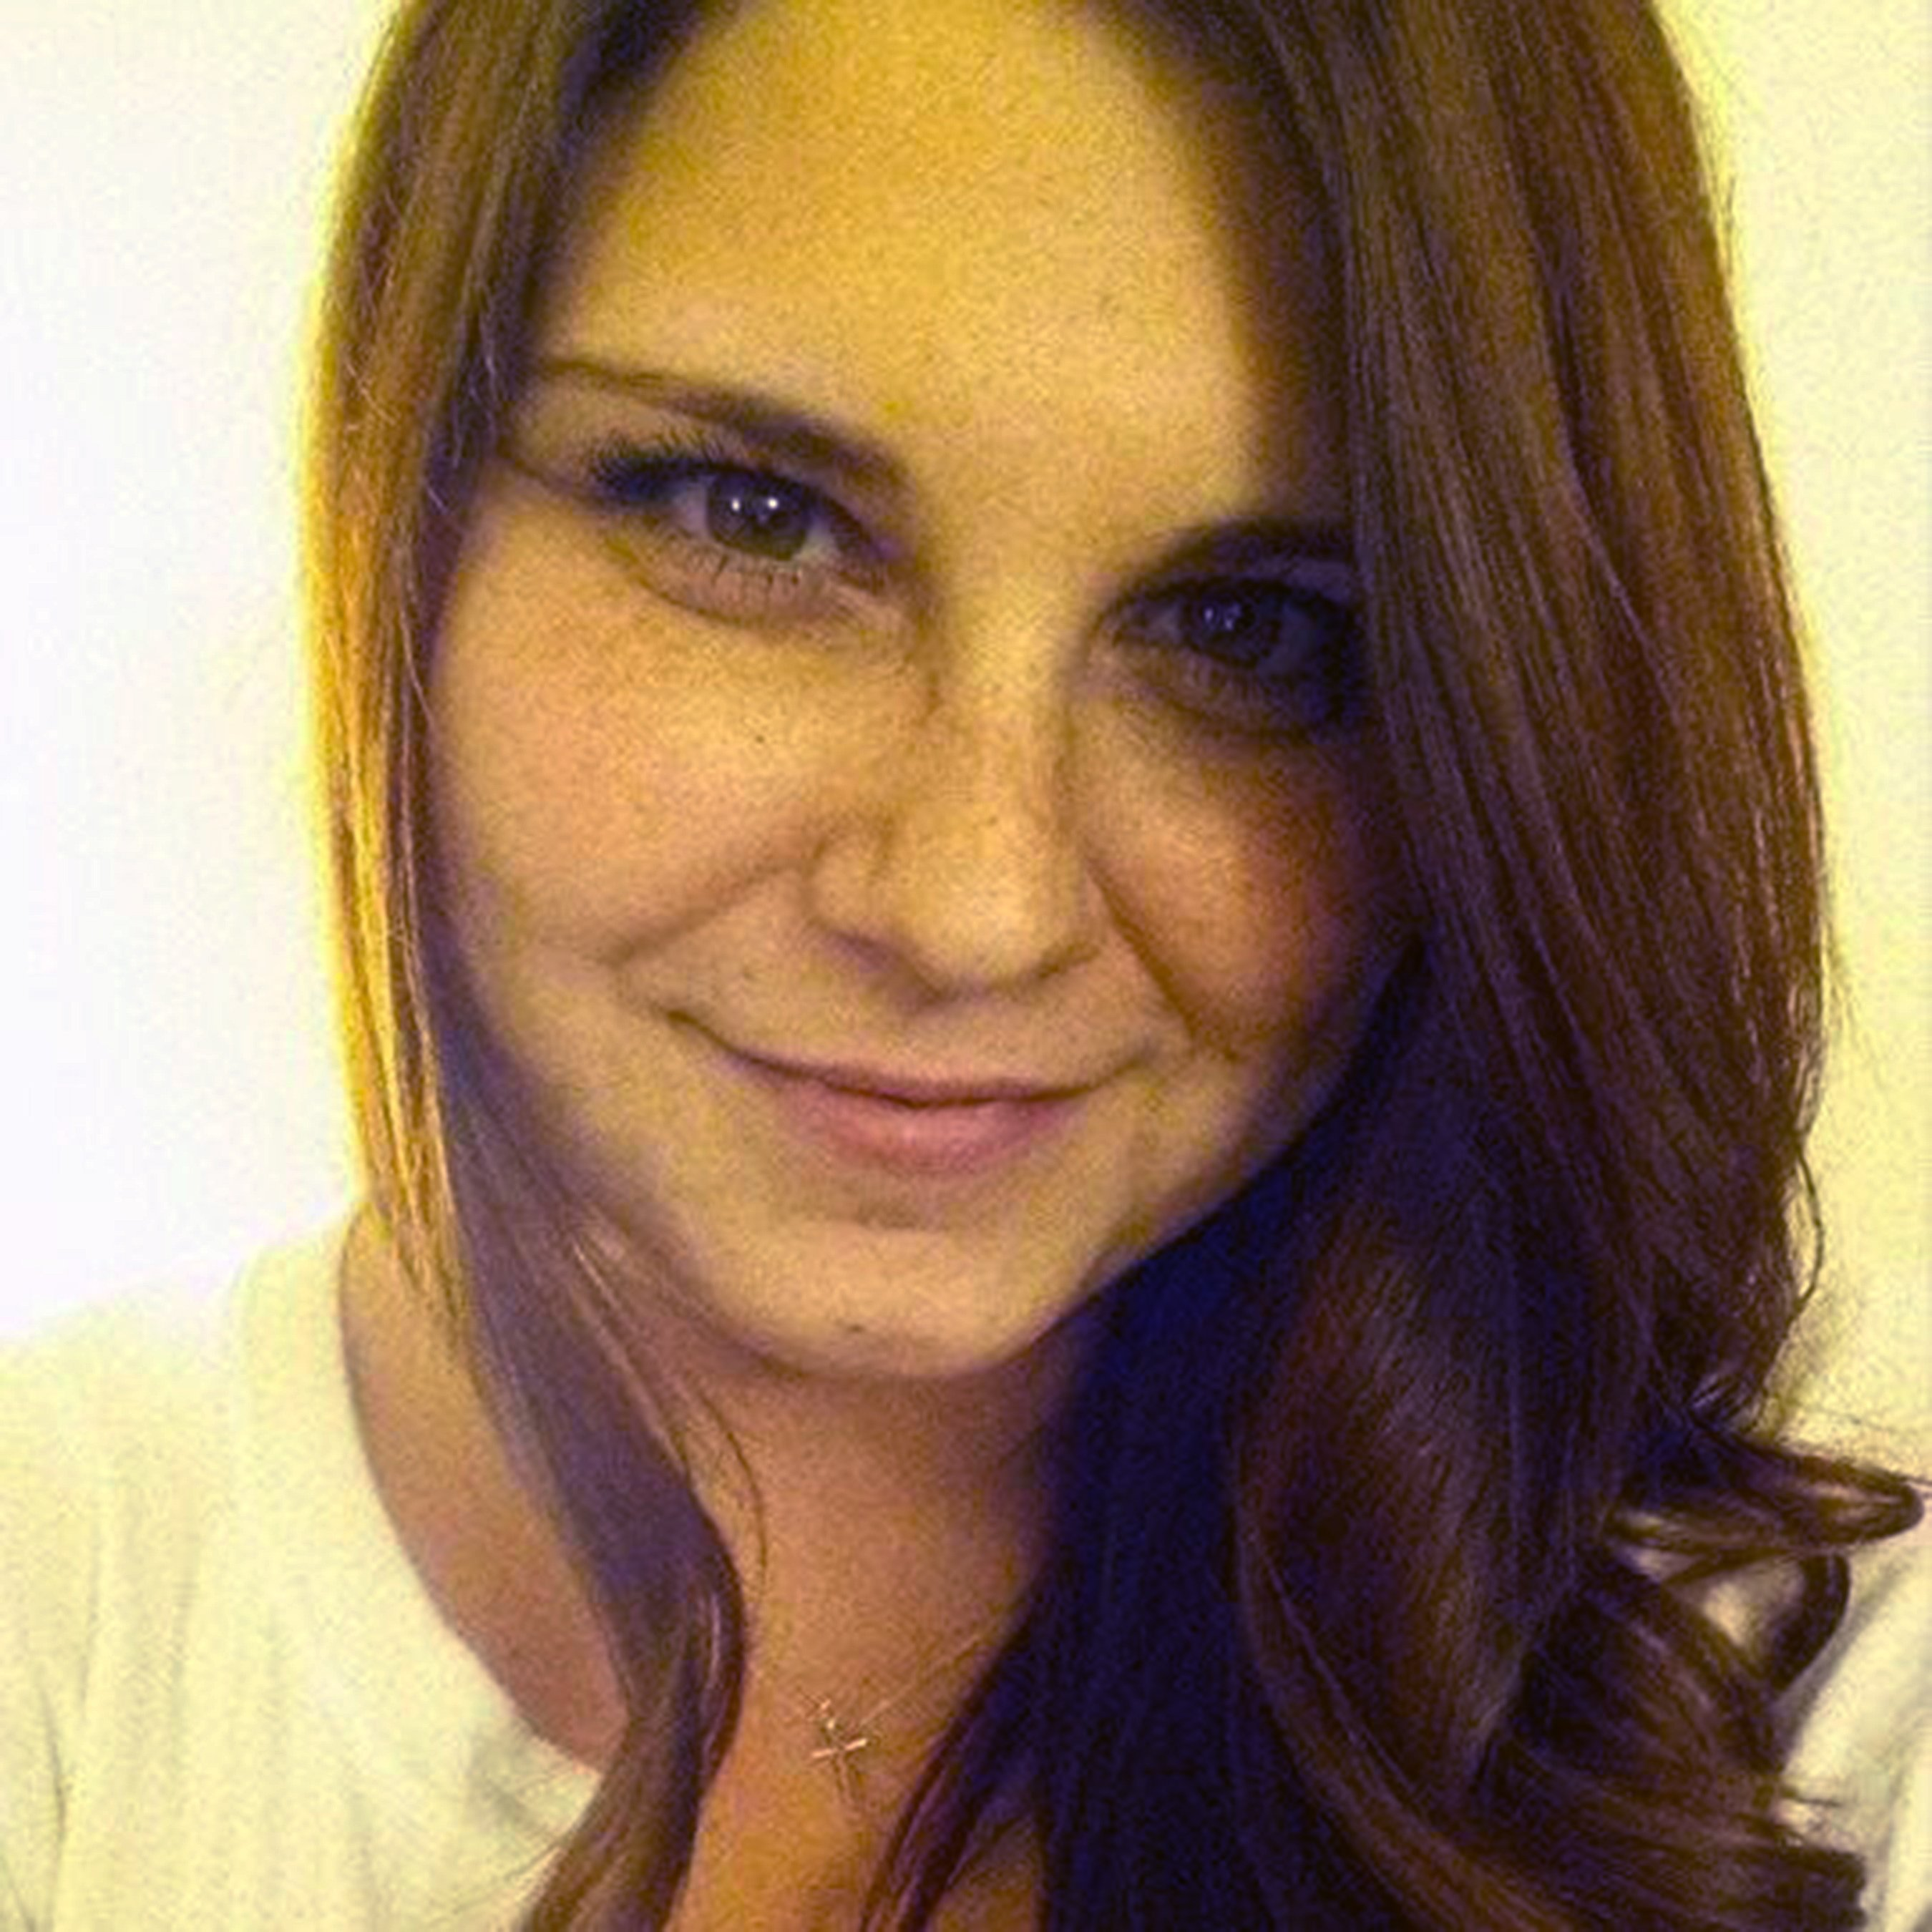 Right Wing Extremist Who Plowing His Car into Crowd Found Guilty of Murdering Heather Heyer